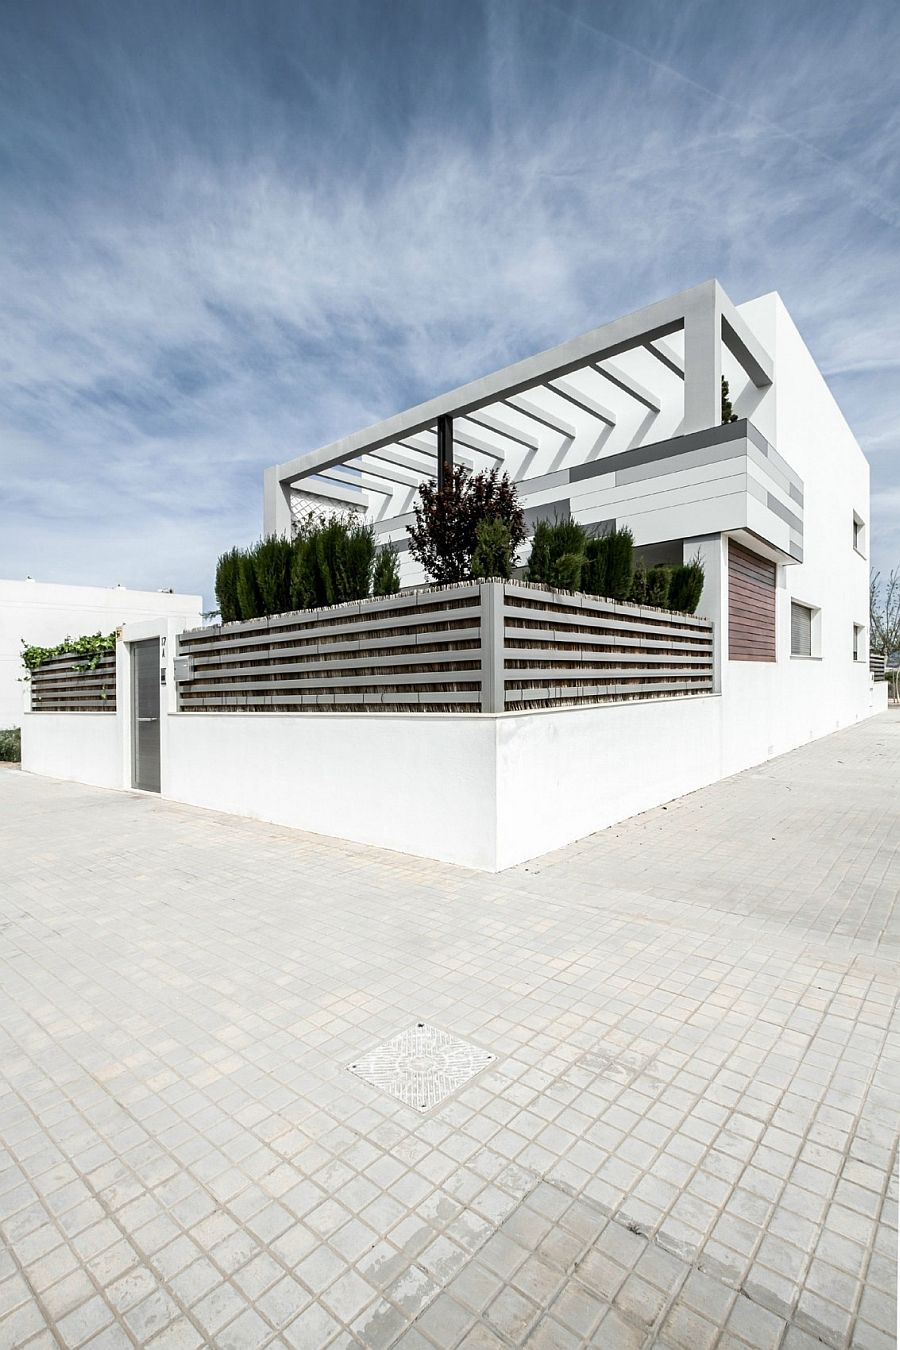 Classy Spanish Home Enlivens An Urbane Interior With Smart Accent ...